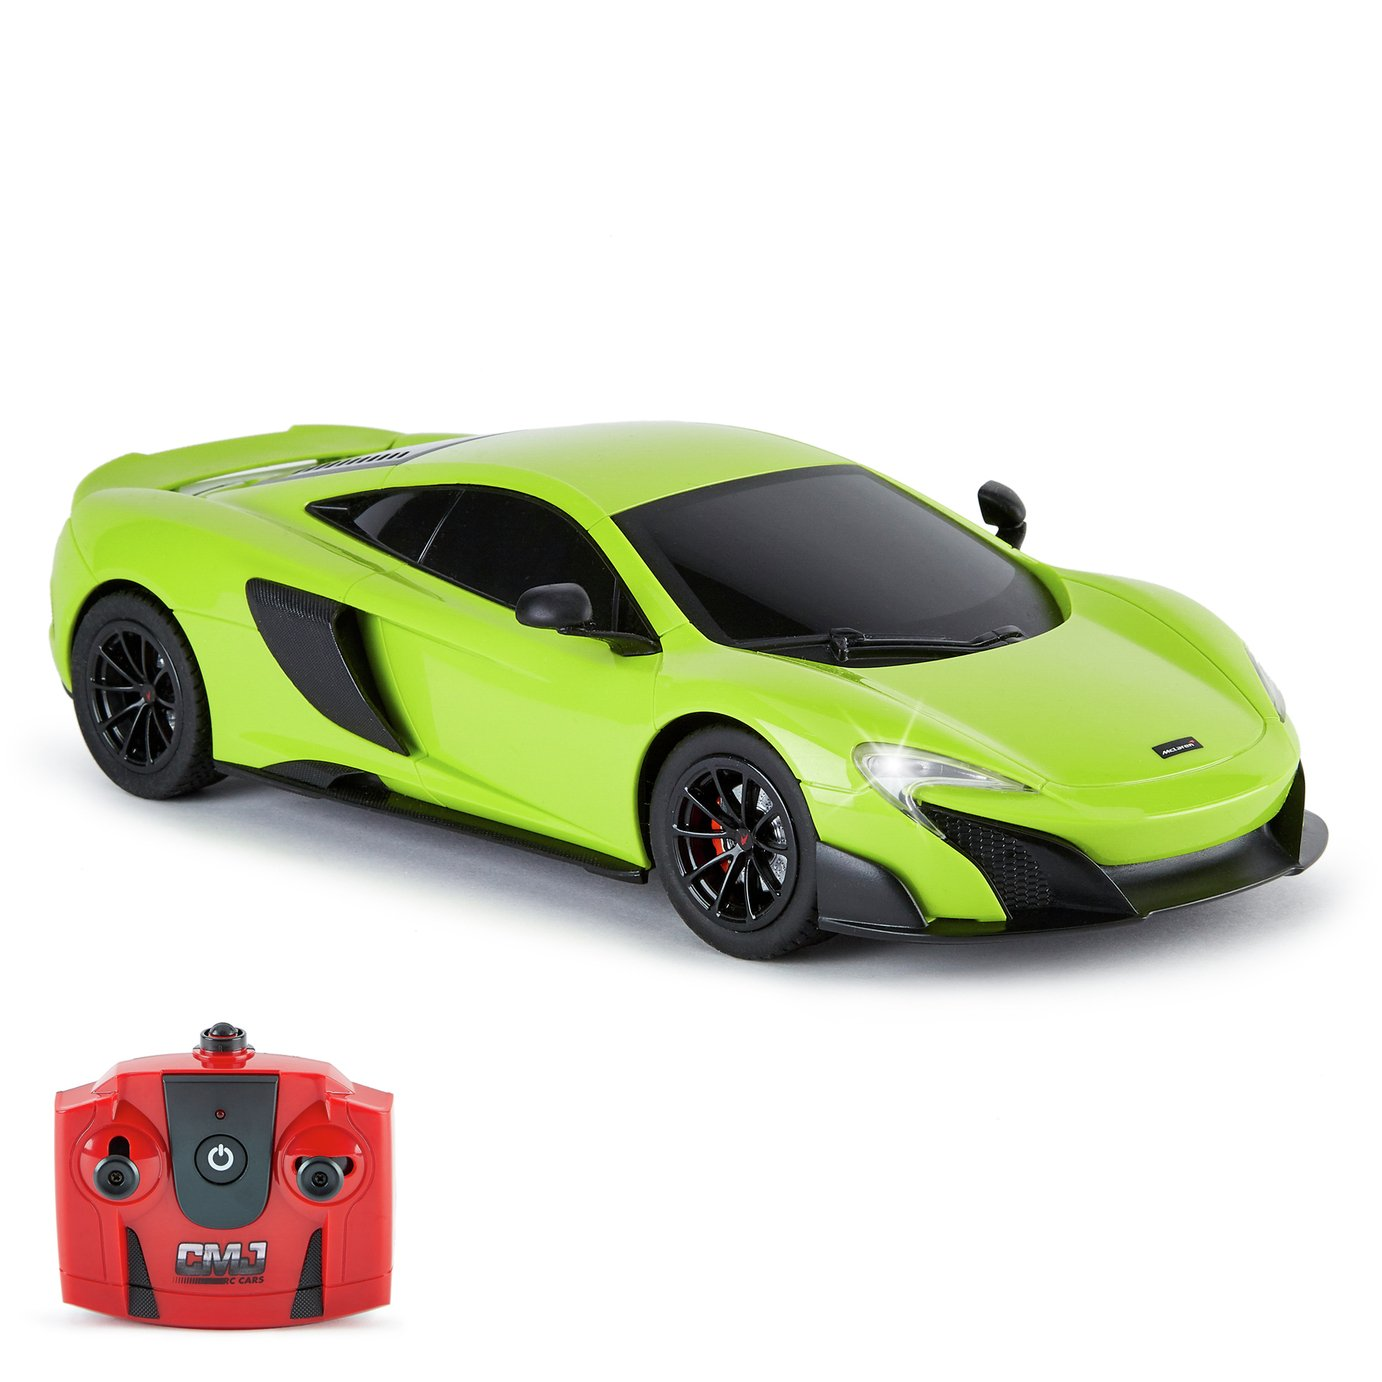 CMJ RC Cars 1:18 Radio Controlled McLaren 675LT Coupe- Green